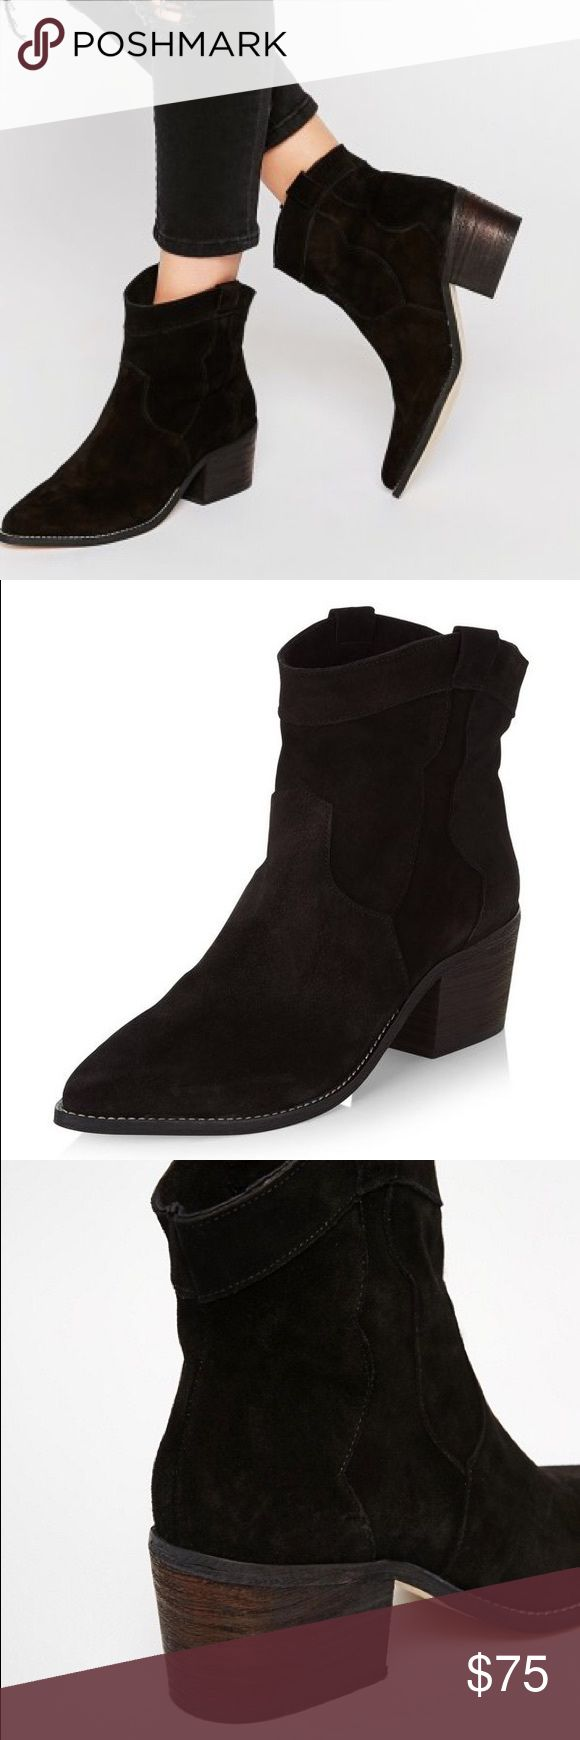 NWT Western booties New with tags! New Look Premium Leather Western Booties in black-brown suede. Look great with skinny jeans and midi dresses. Originally purchased from ASOS. No trades. New Look Shoes Ankle Boots & Booties